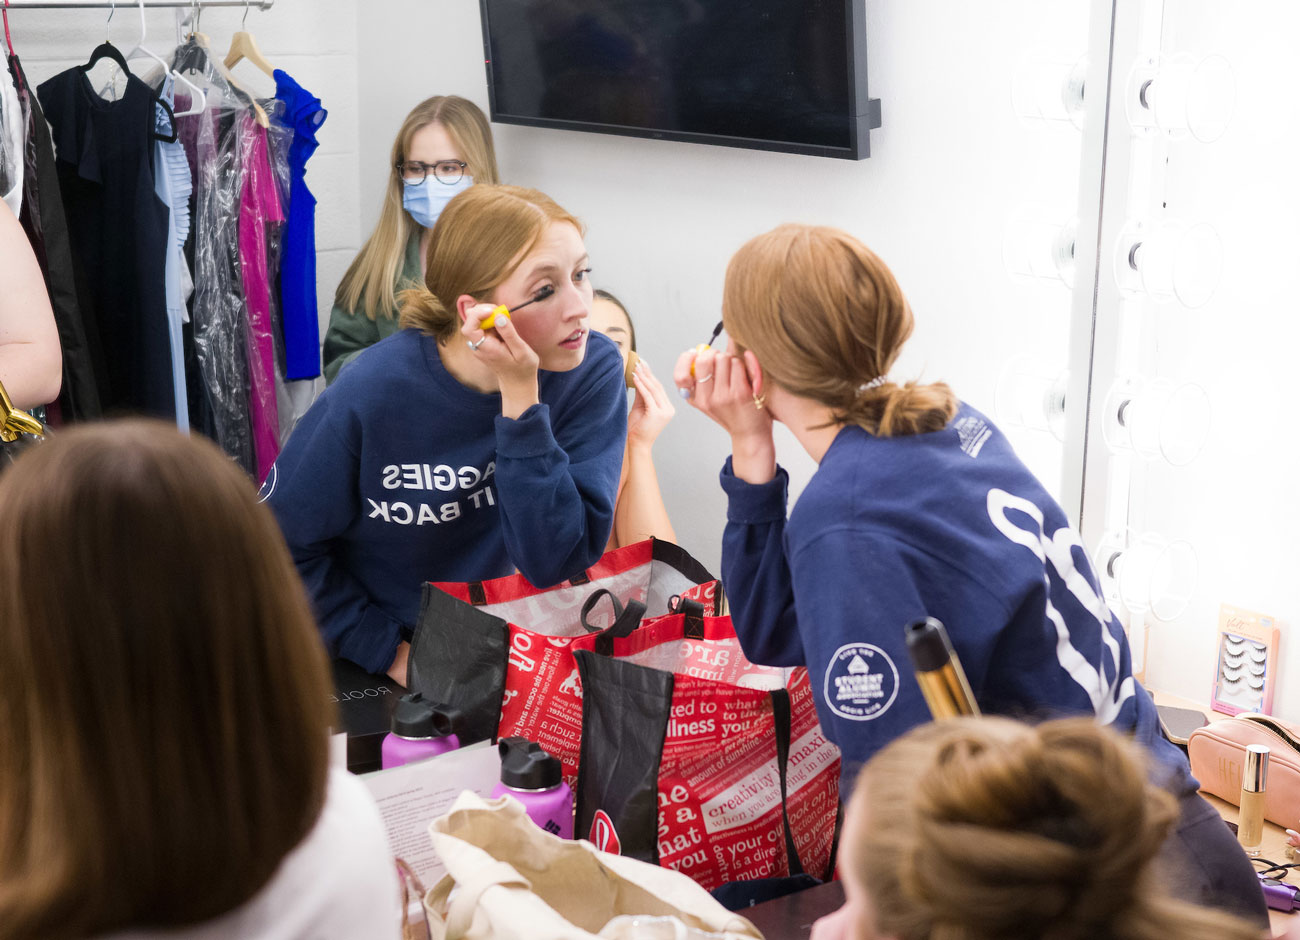 a young woman leans toward a large mirror as she puts on her makeup. a rack of evening dresses is in the background. she is wearing an Aggie t-shirt.